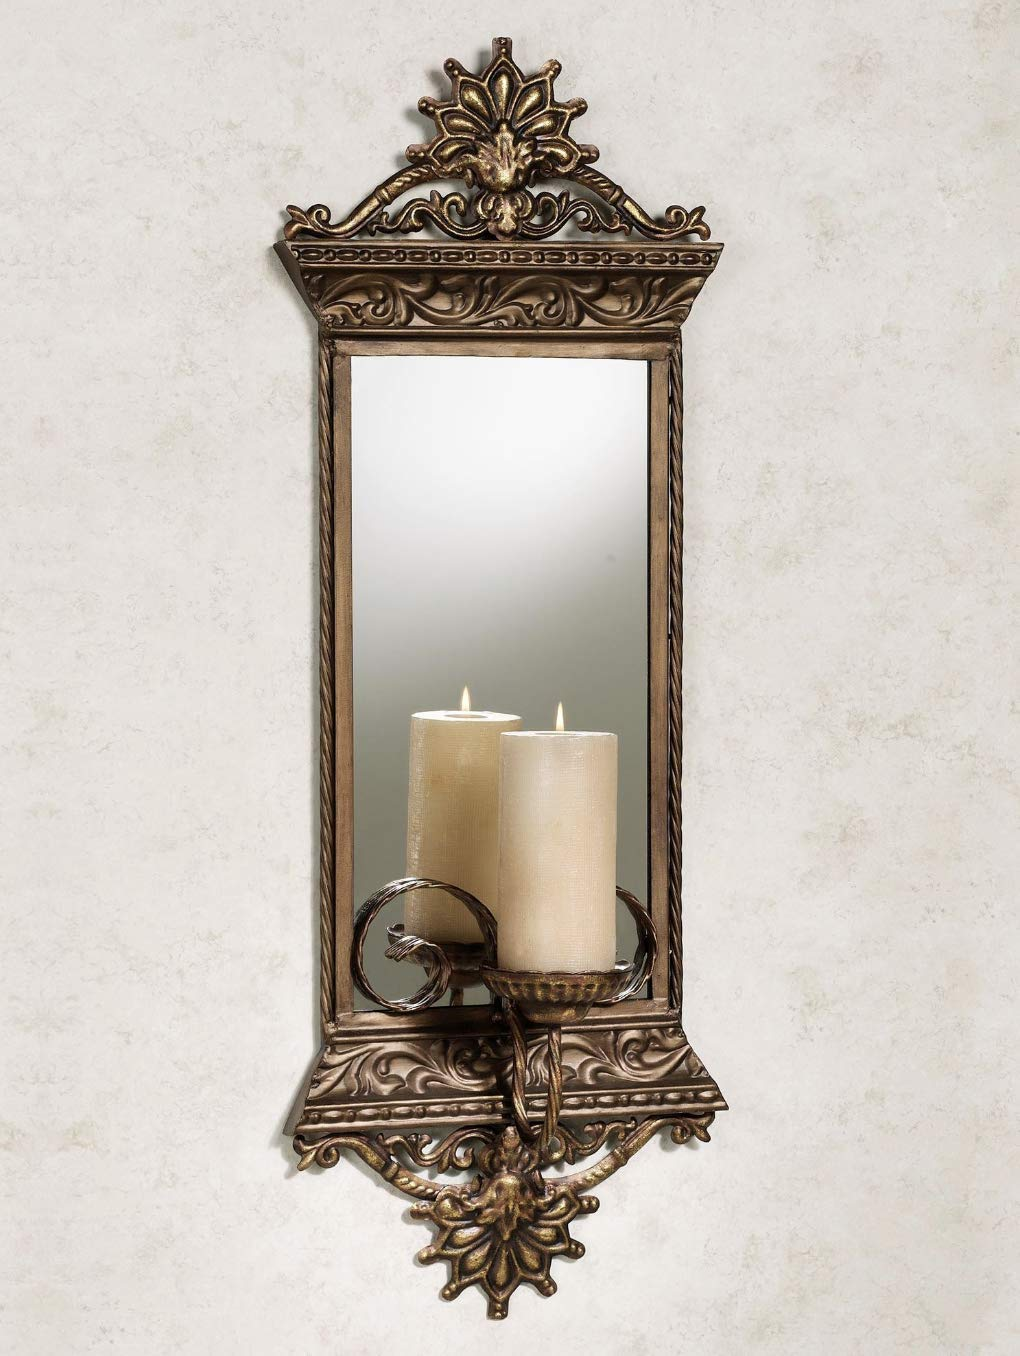 Touch of Class Georgiane Mirrored Wall Sconce Antique Gold by Touch of Class